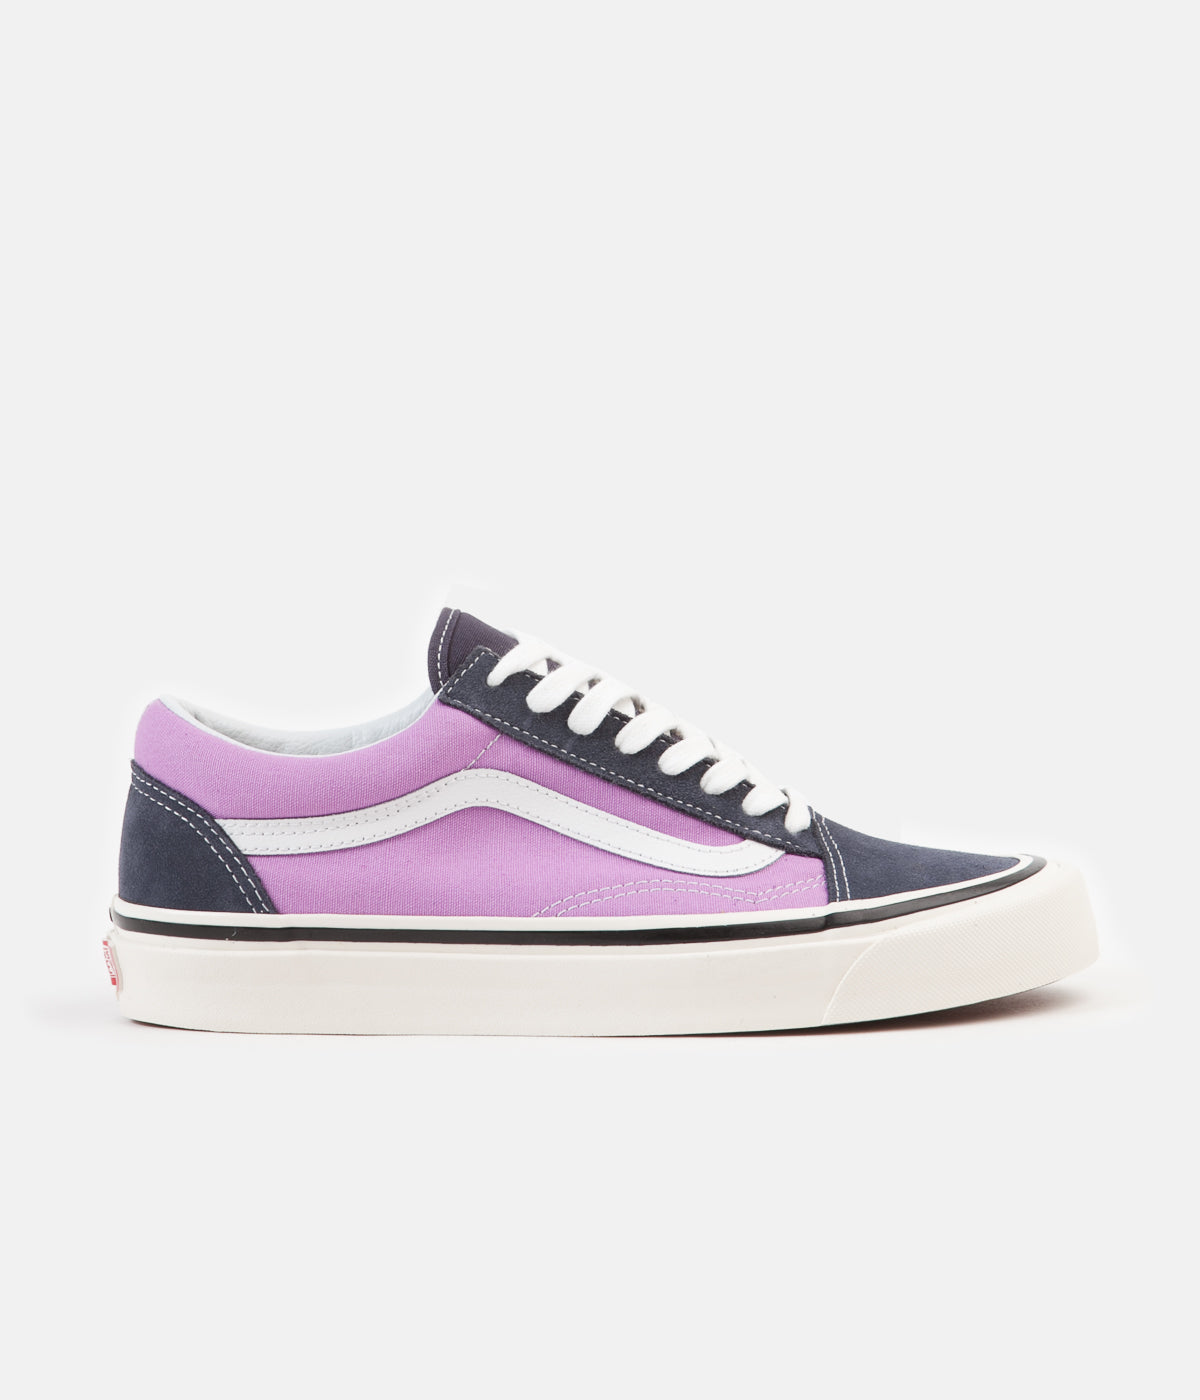 4ba0c74094 ... Vans Old Skool 36 DX Anaheim Factory Shoes - OG Navy   OG Lilac ...